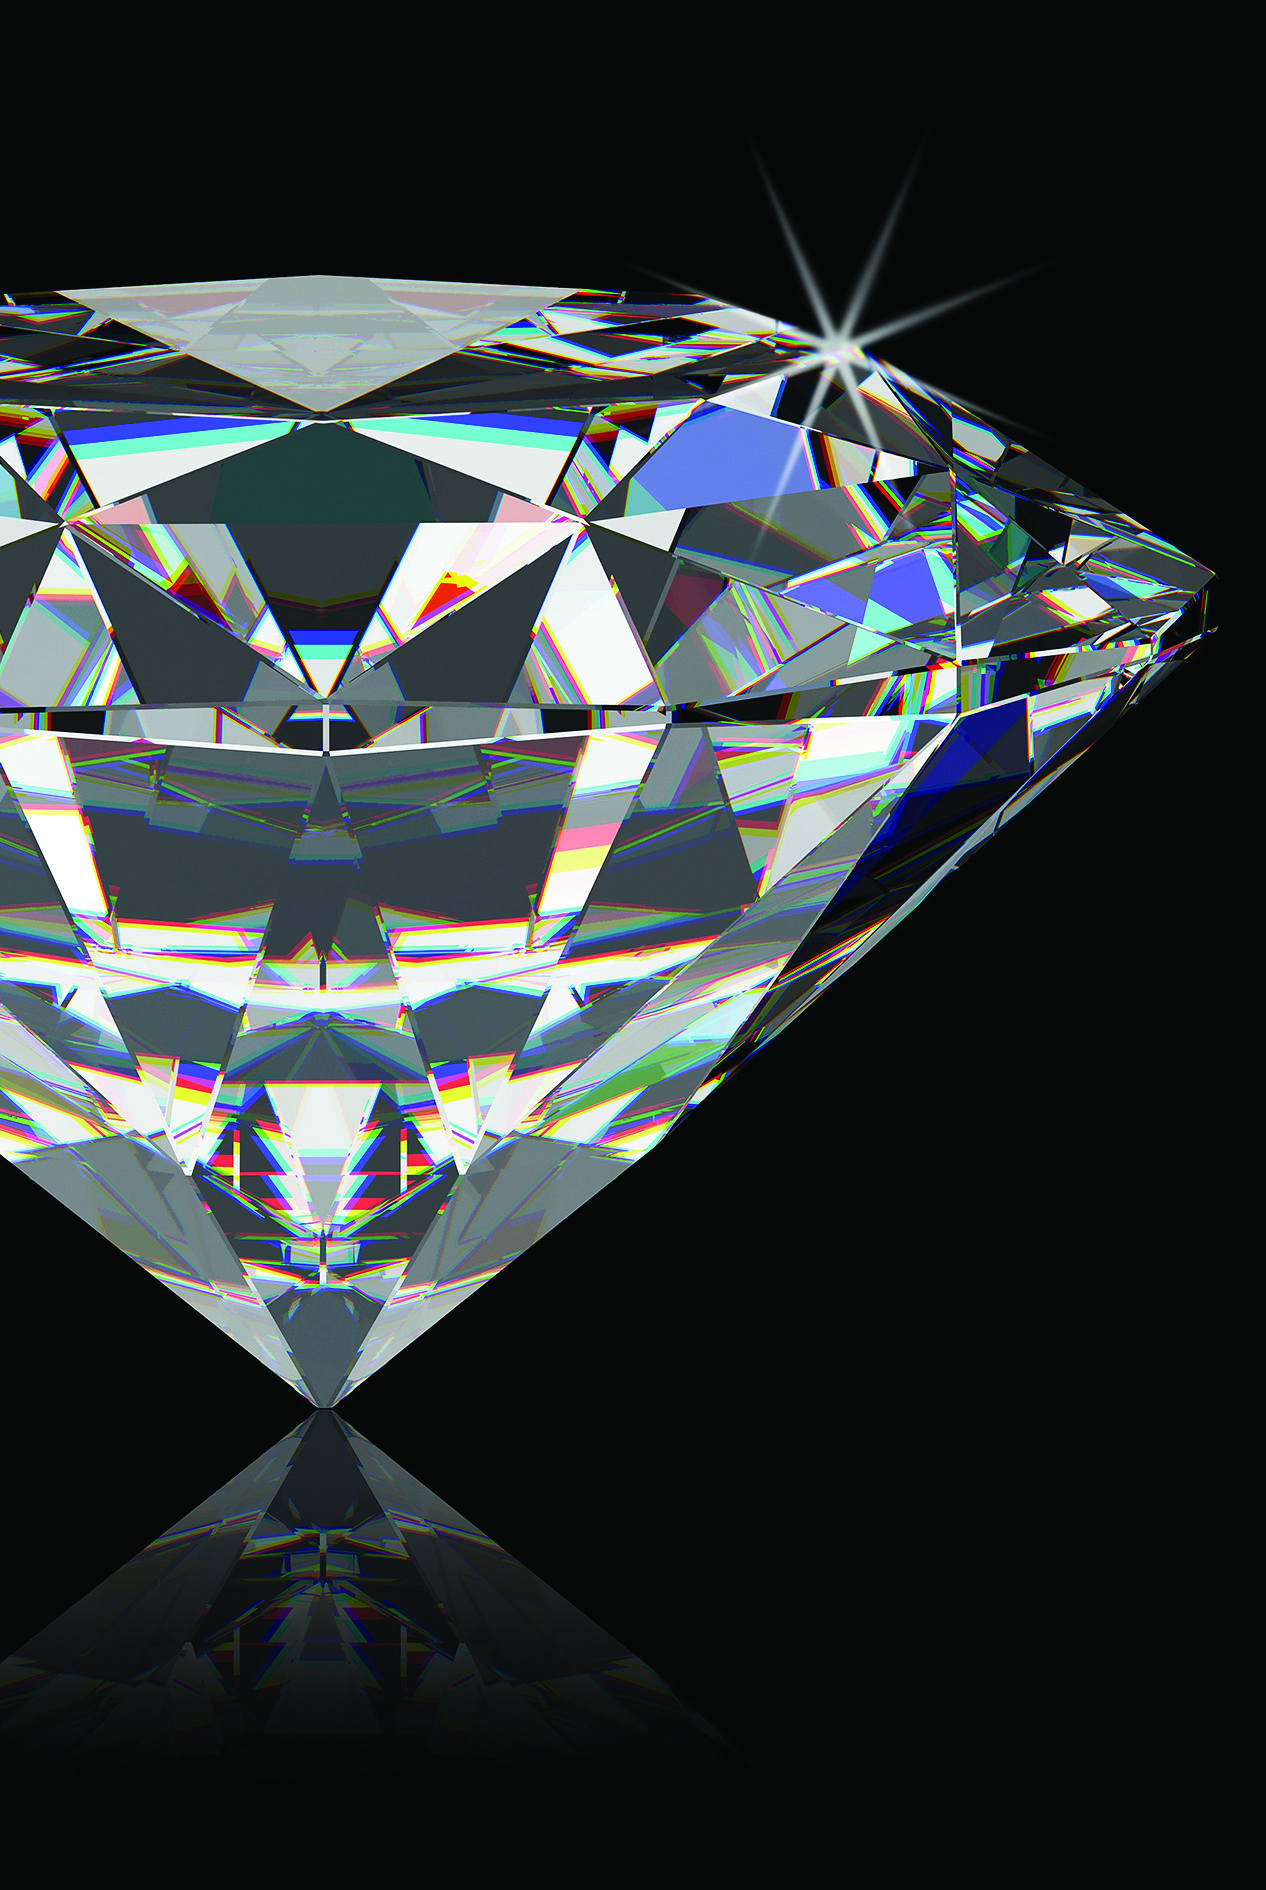 Map Of Diamond Boron Bond Paves Way For New Materials